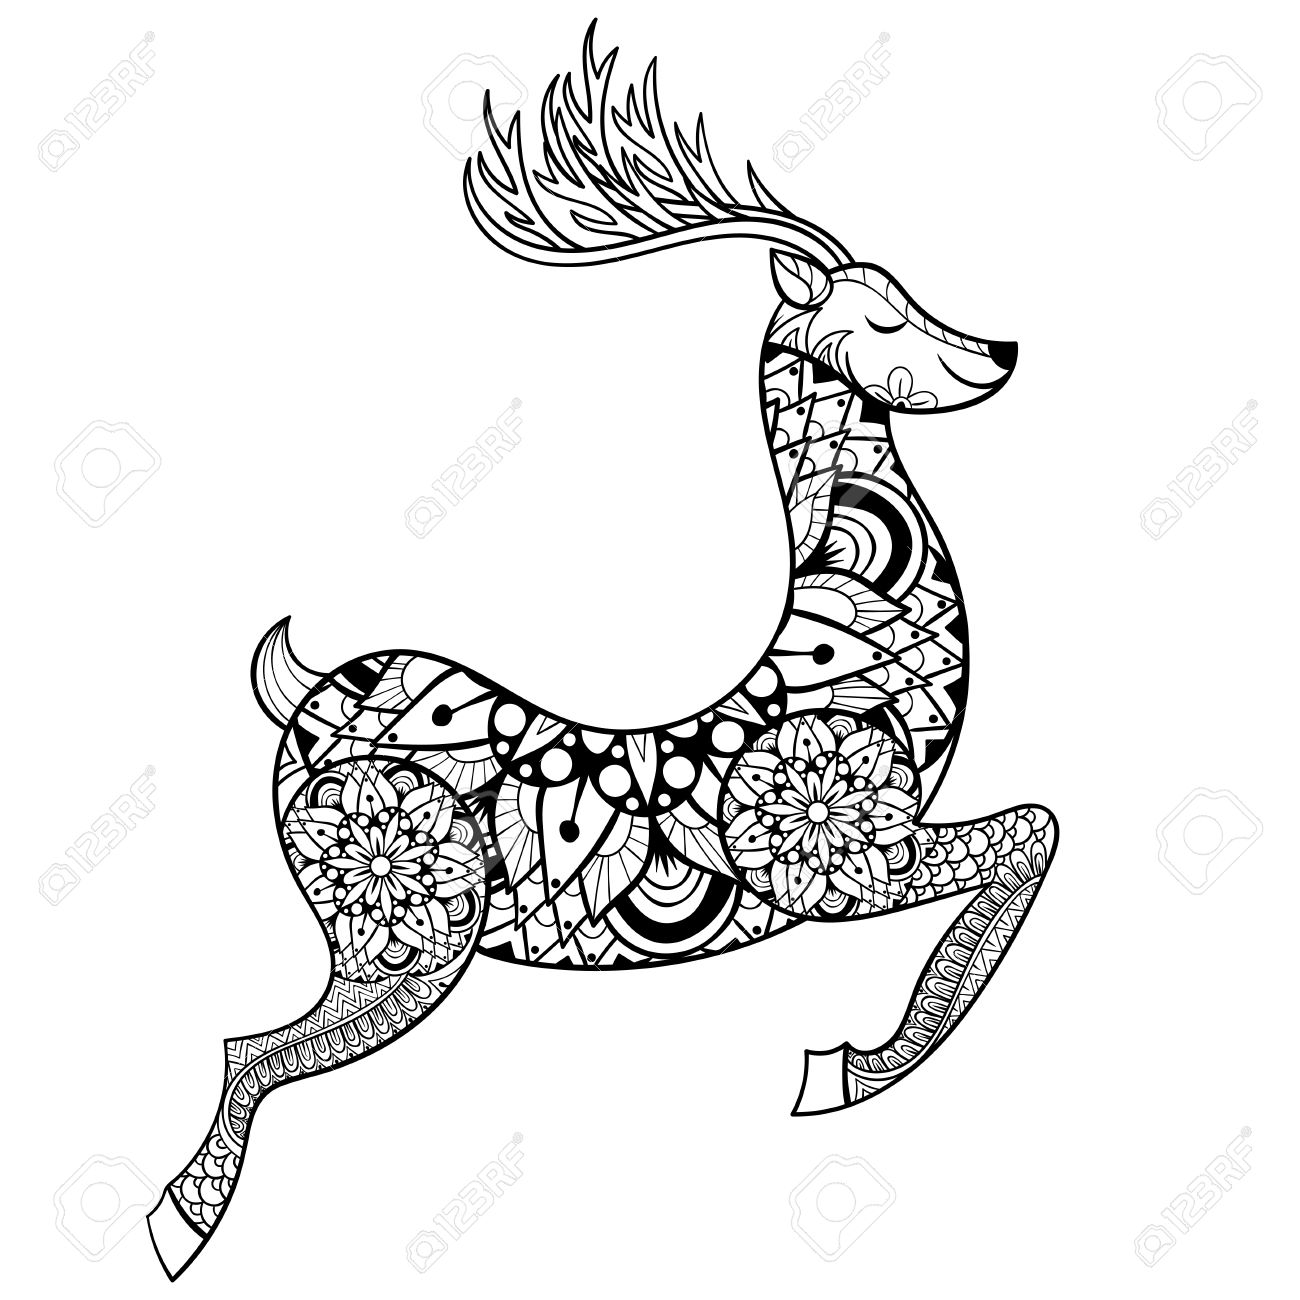 51457108 zentangle vector reindeer for adult anti stress coloring pages ornamental tribal patterned christmasjpg